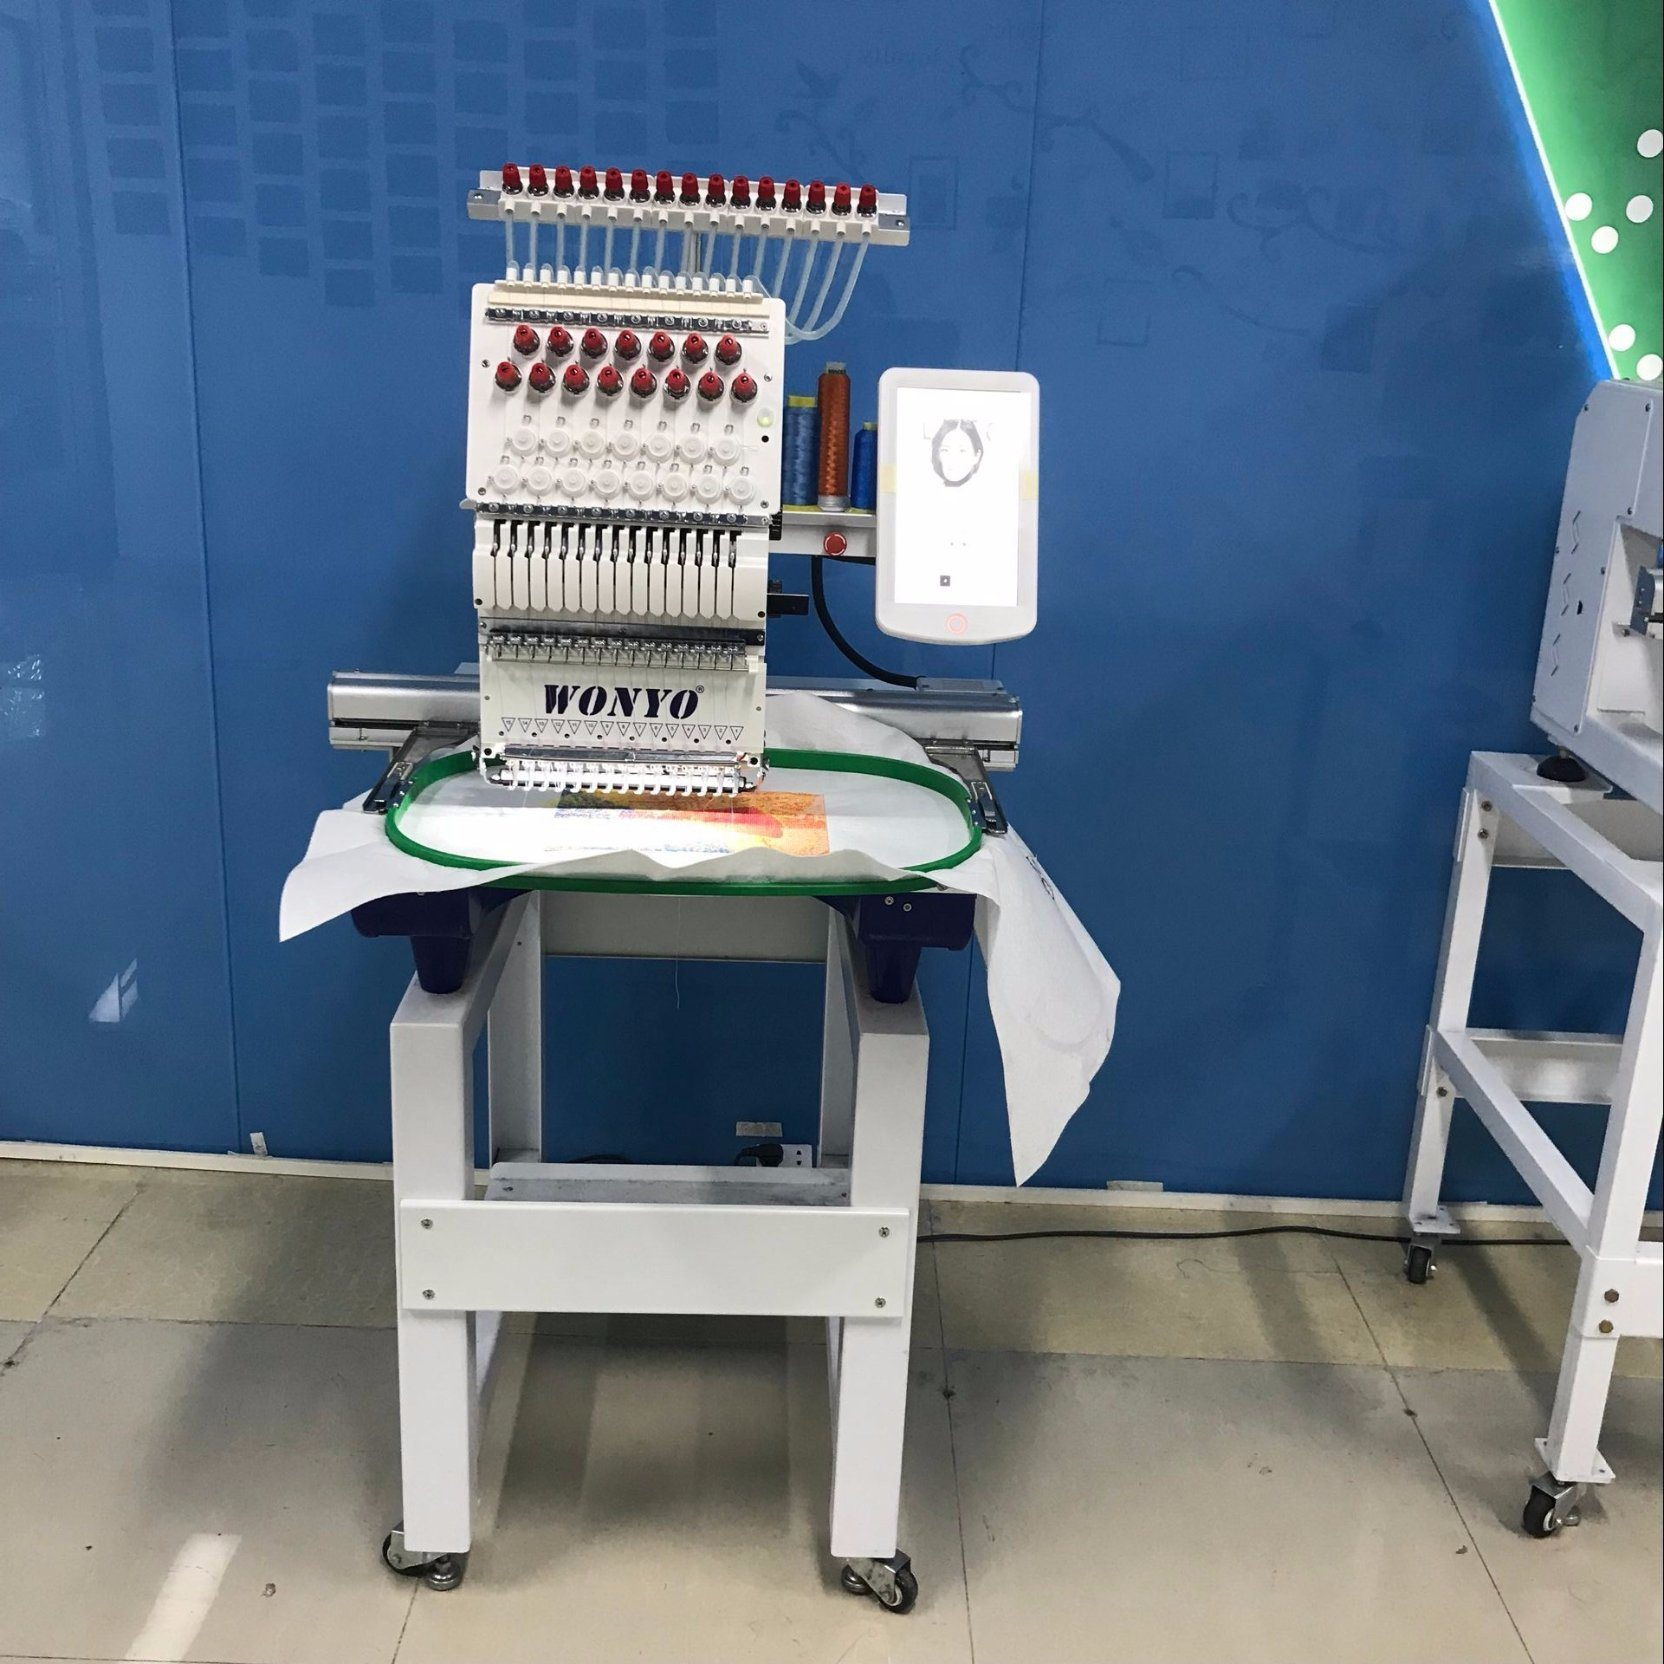 Used Embroidery Machines For Sale >> Hot Item Wonyo Computerized One Head Used Barudan Embroidery Machine For Sale